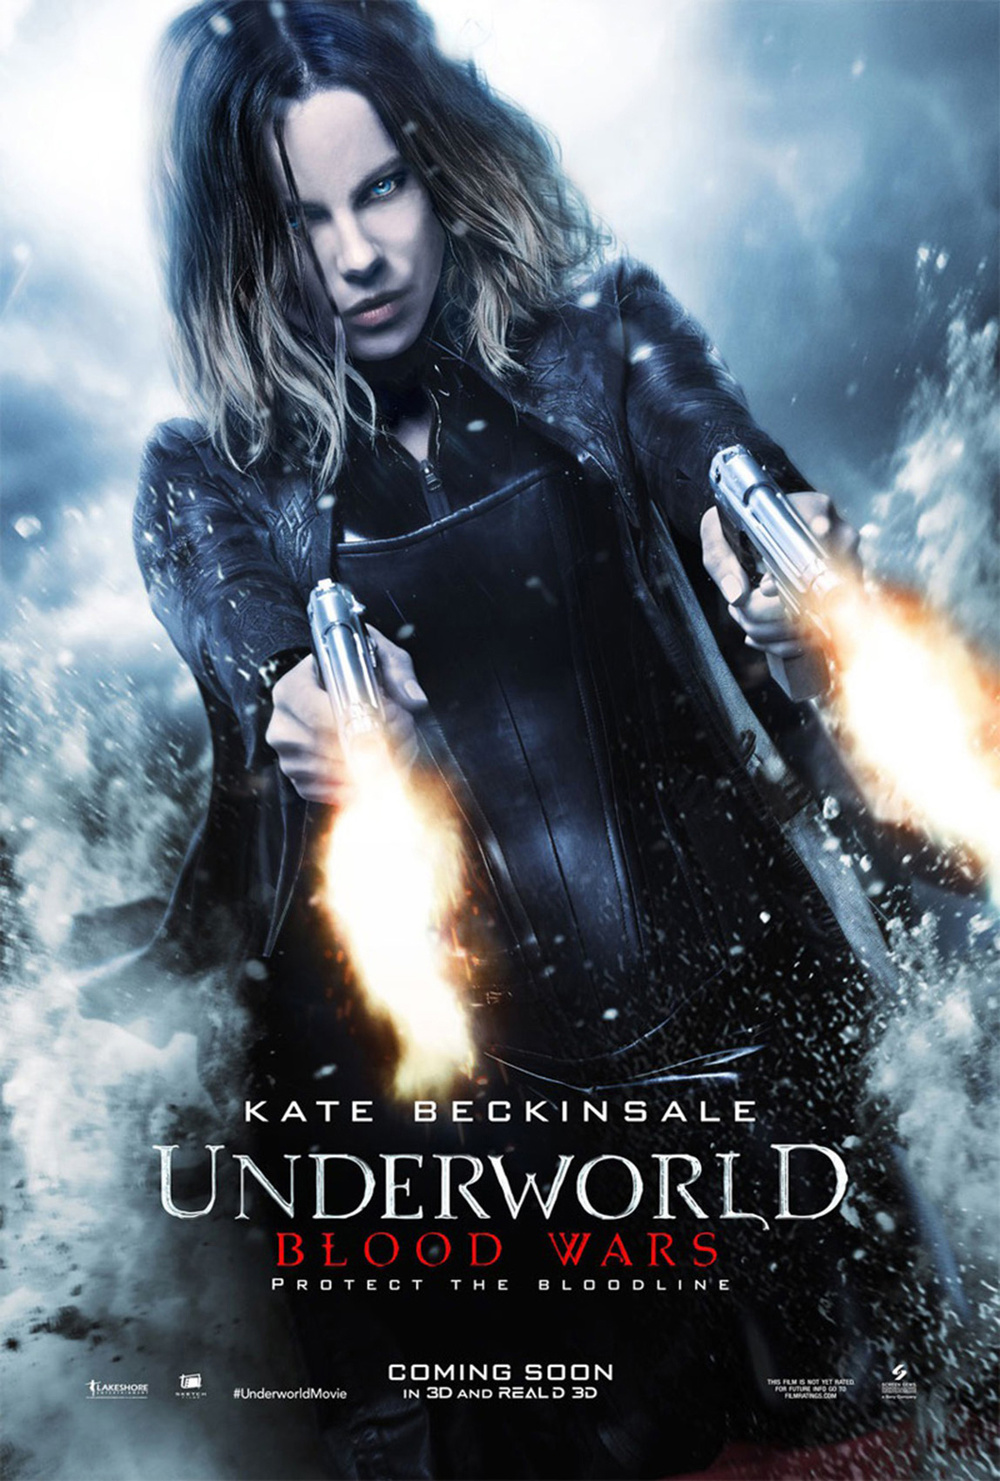 KateBeckinsale_Underworld_003.jpg